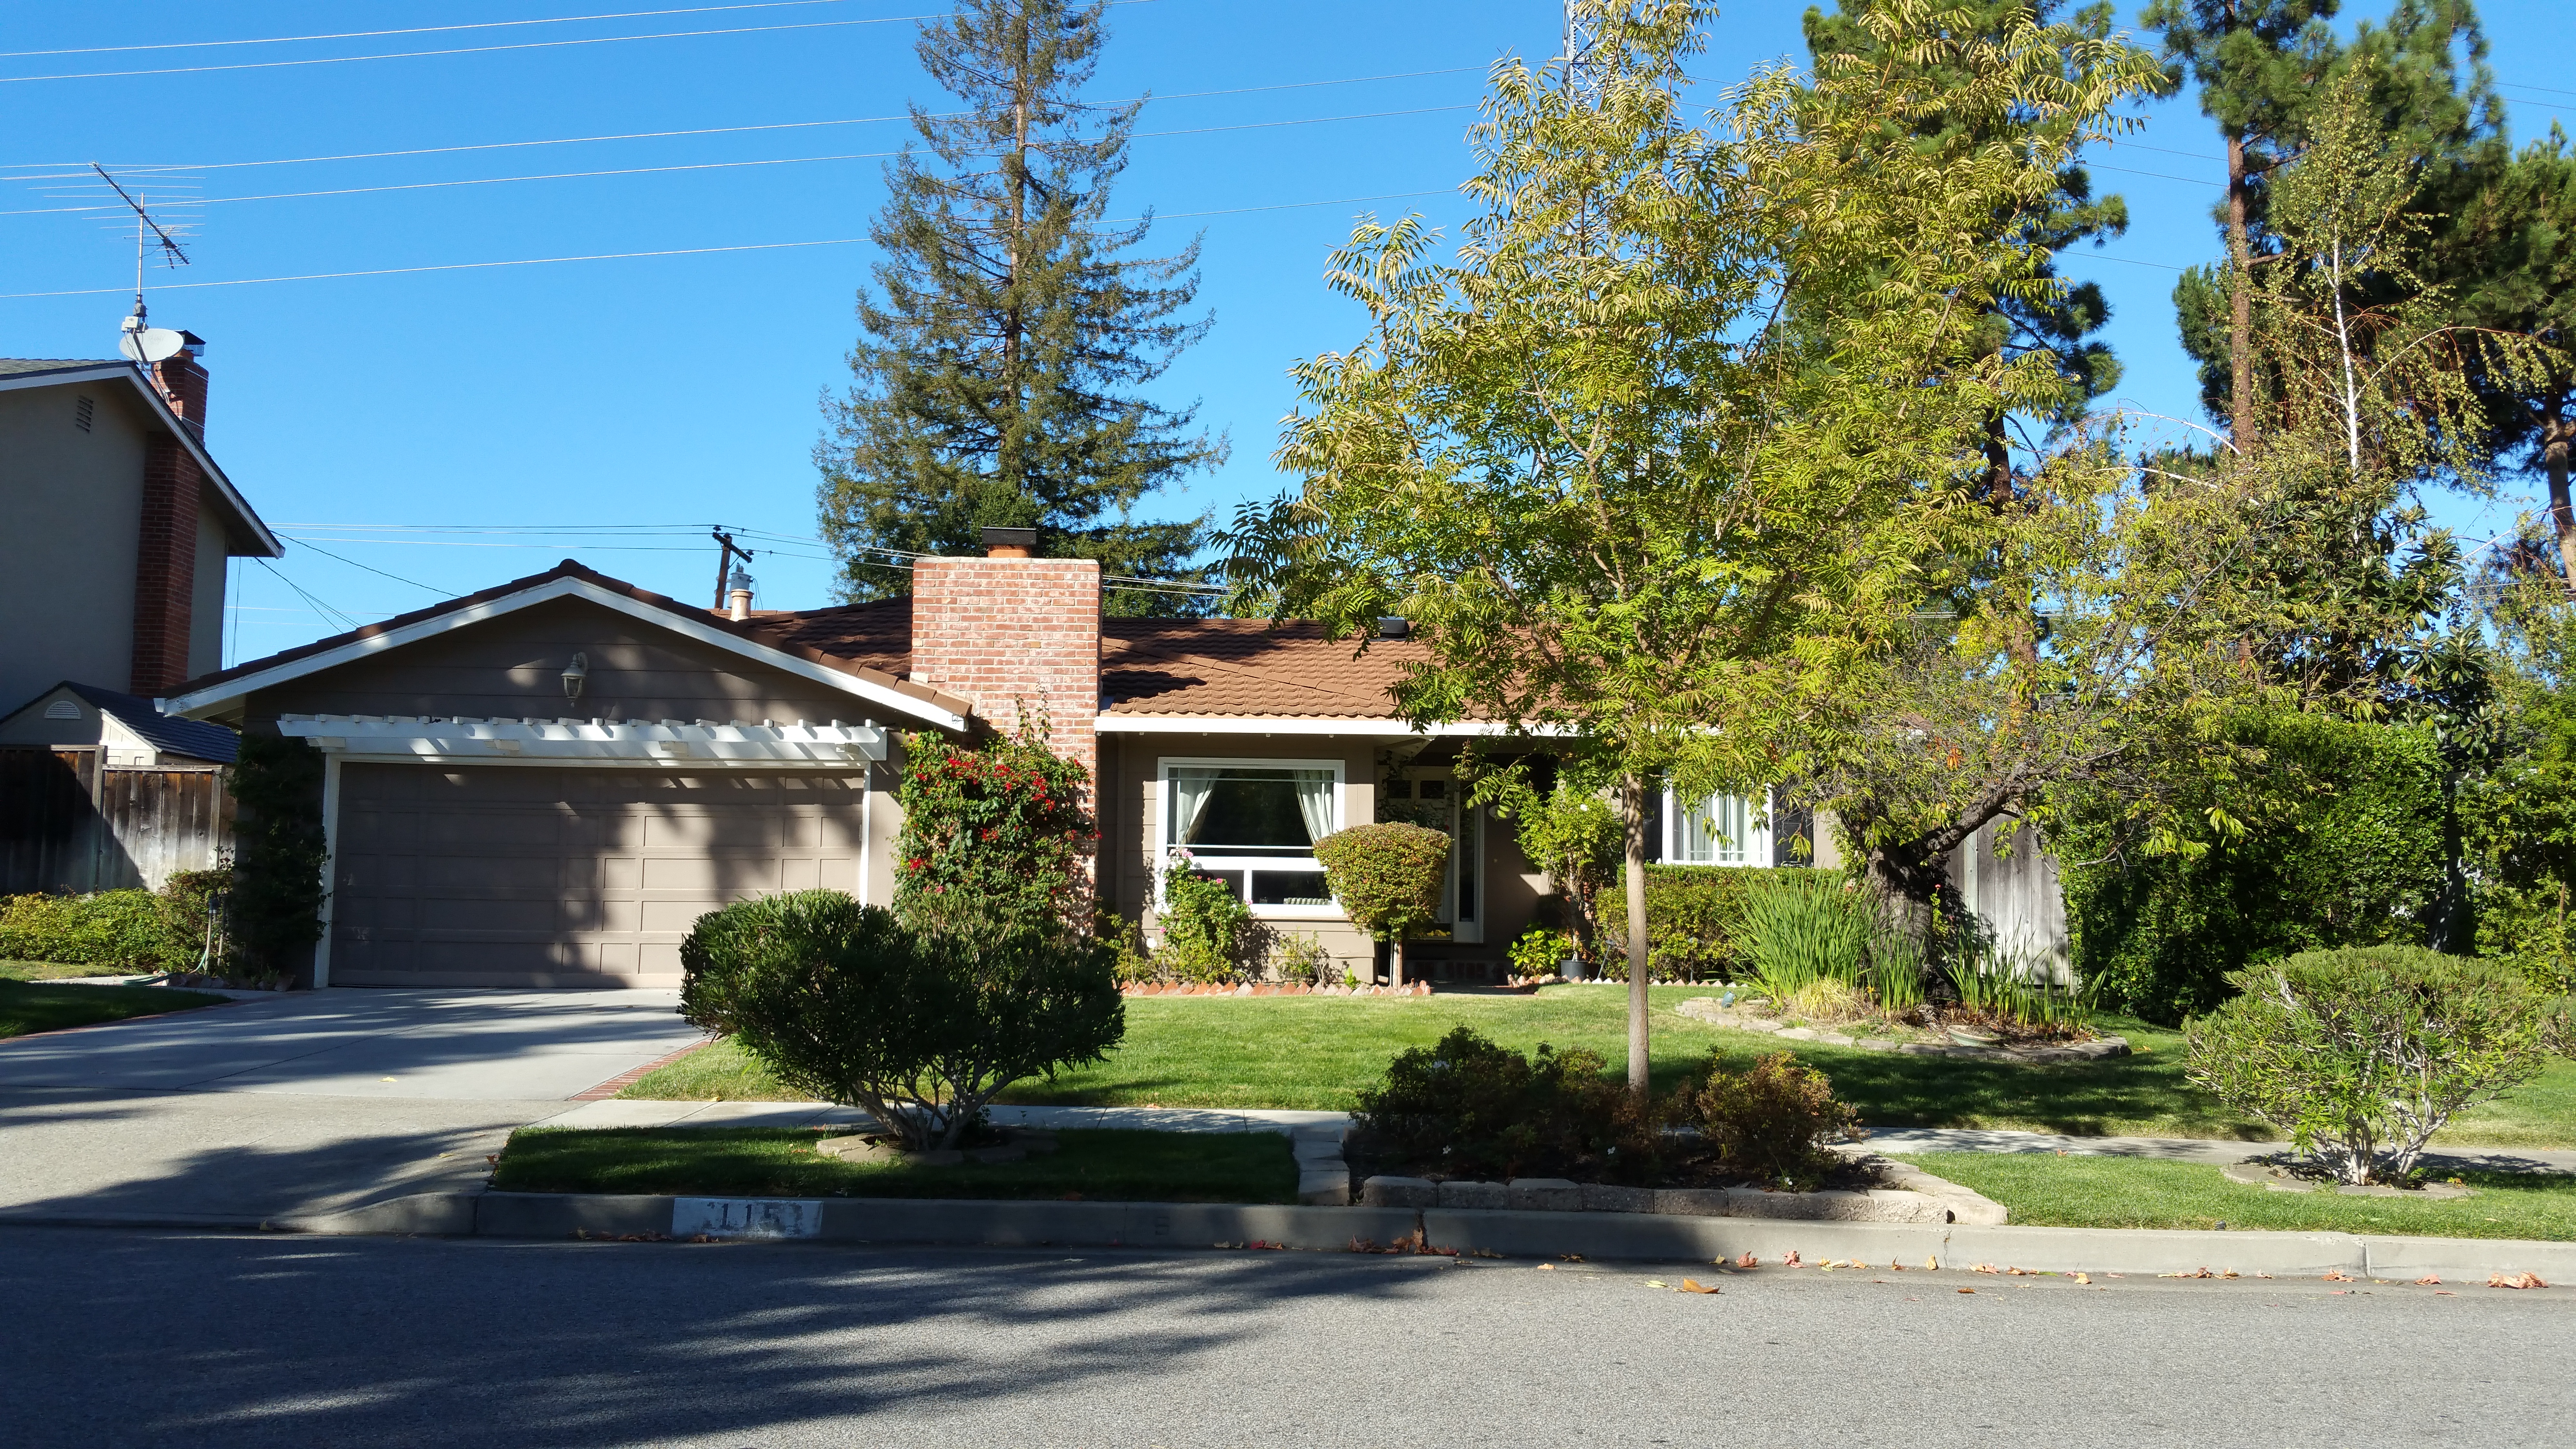 6 Anne Way near Union - Strathmore neighborhood of Los Gatos